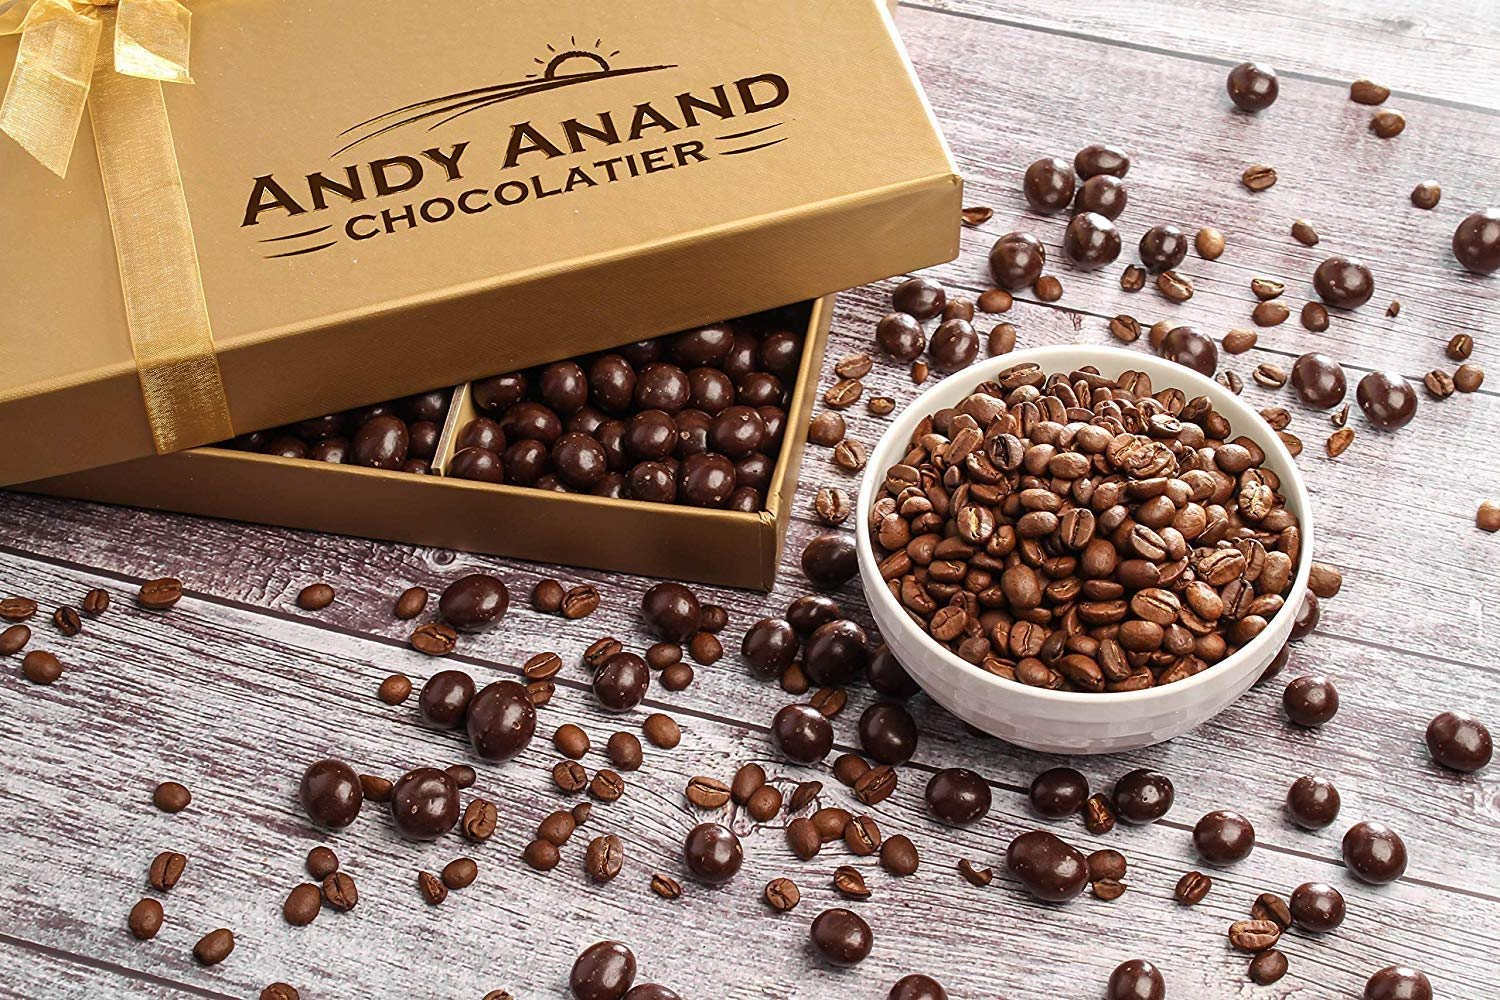 Andy Anand's California Dark Chocolate Covered Espresso Coffee Beans 1 lbs, for Birthday, Valentine Day, Gourmet Christmas Holiday Food Gift Basket, Thanksgiving (1lbs With Teddy Bear) by Andy Anand Chocolates